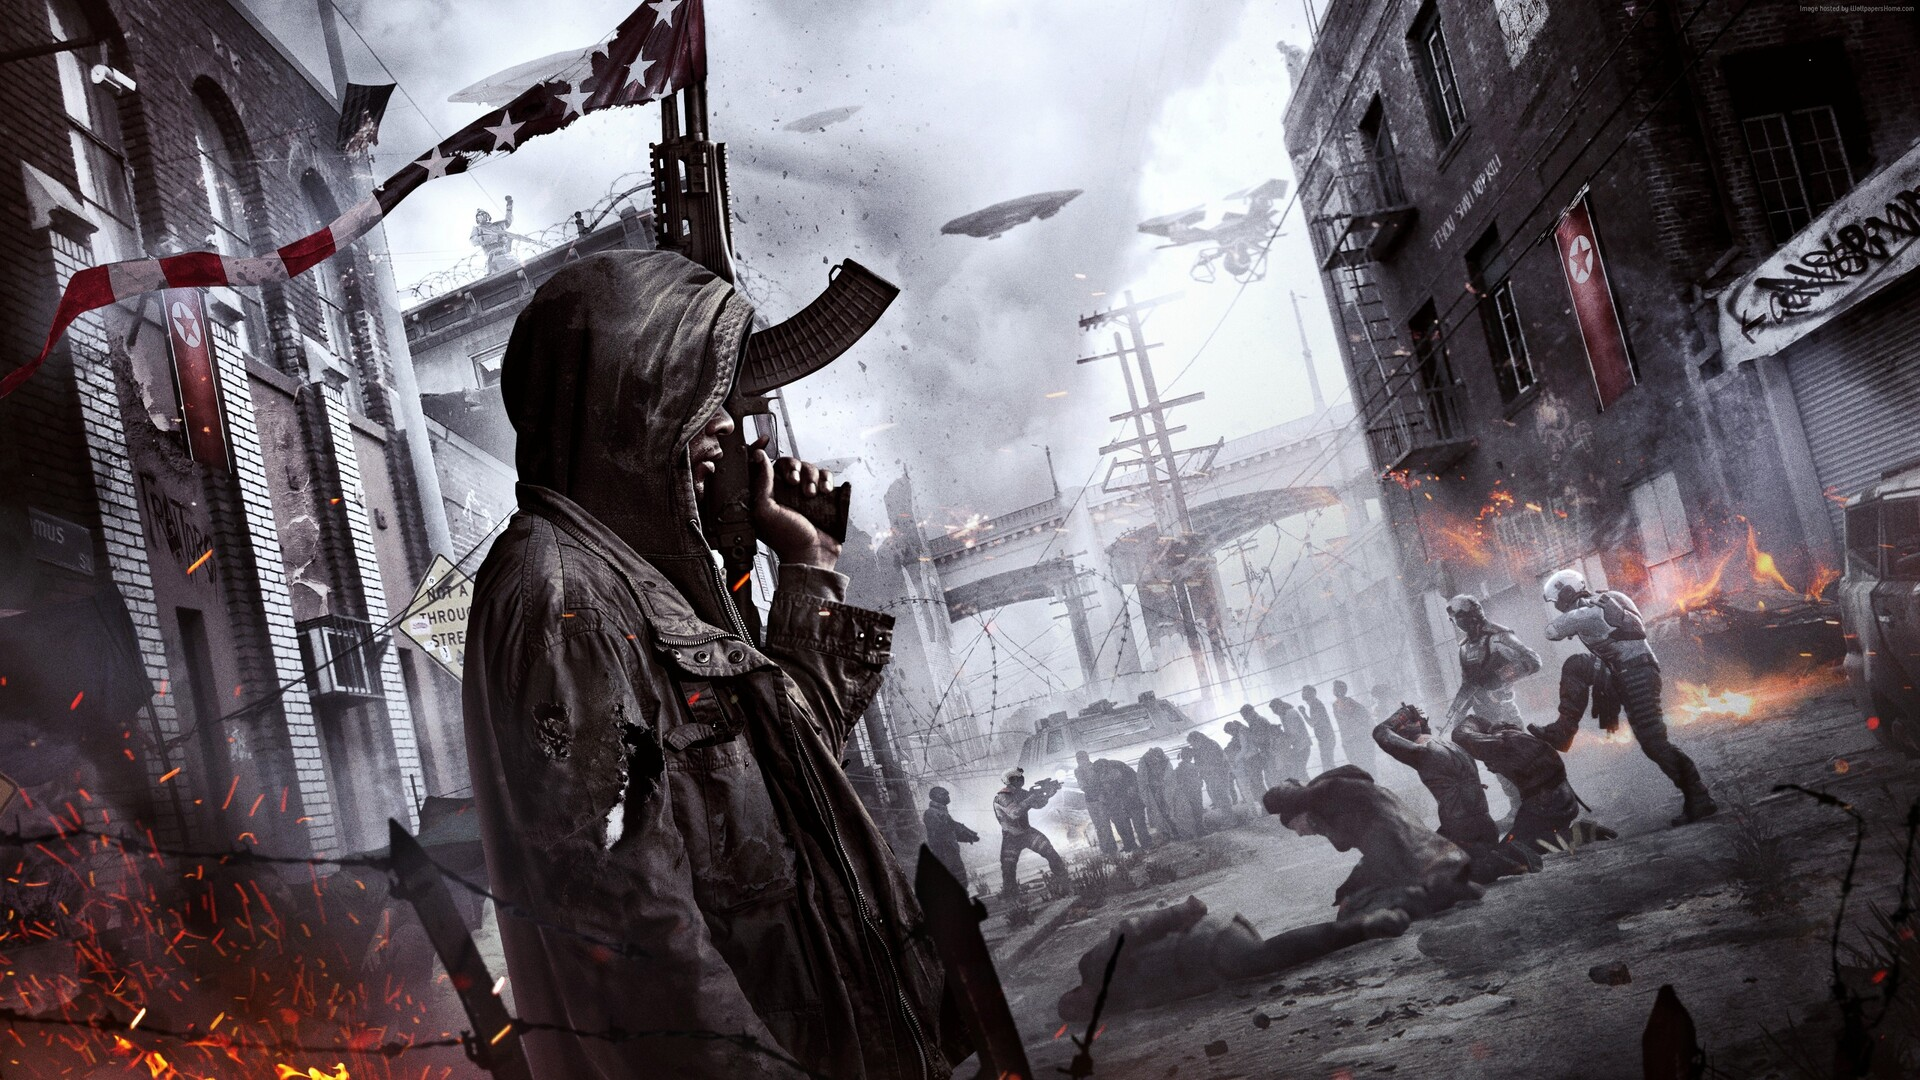 1920x1080 Homefront The Revolution 2016 Game Laptop Full Hd 1080p Hd